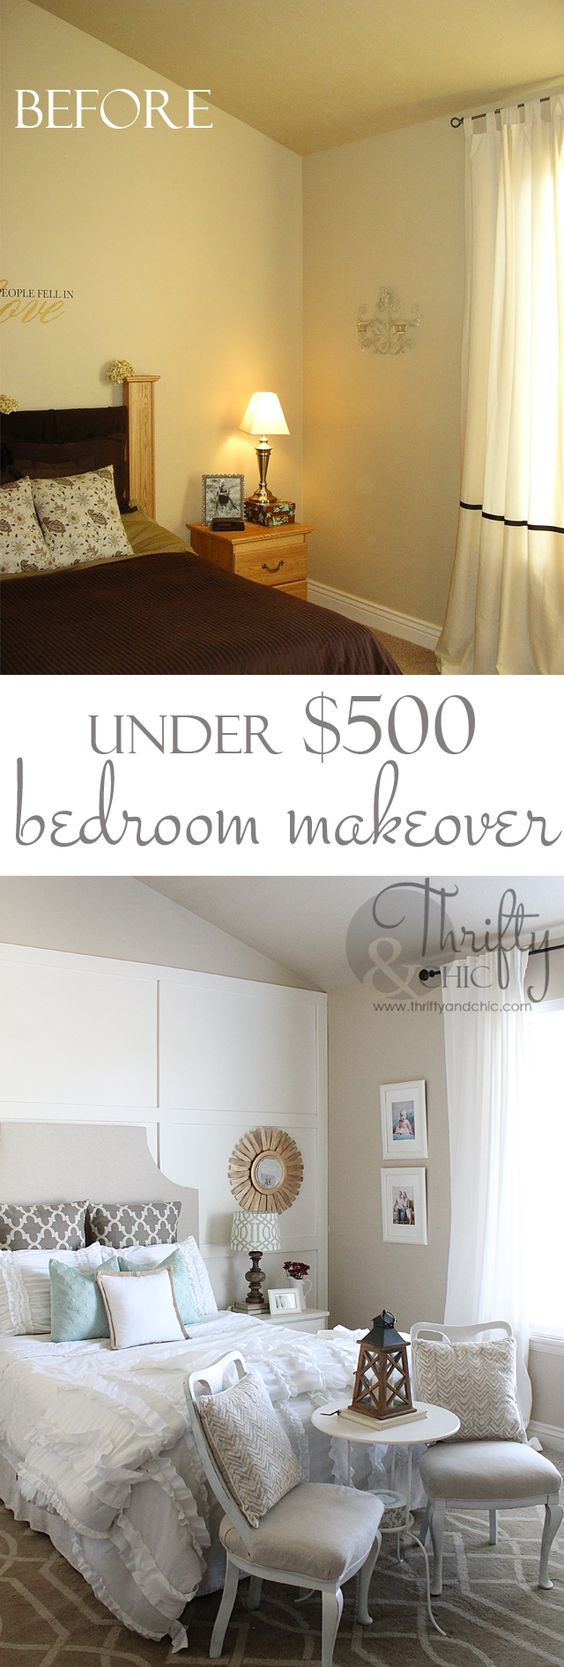 Master bedroom makeover for under  500  Great DIY ideas. 17 Best ideas about Master Bedroom Makeover on Pinterest   Master